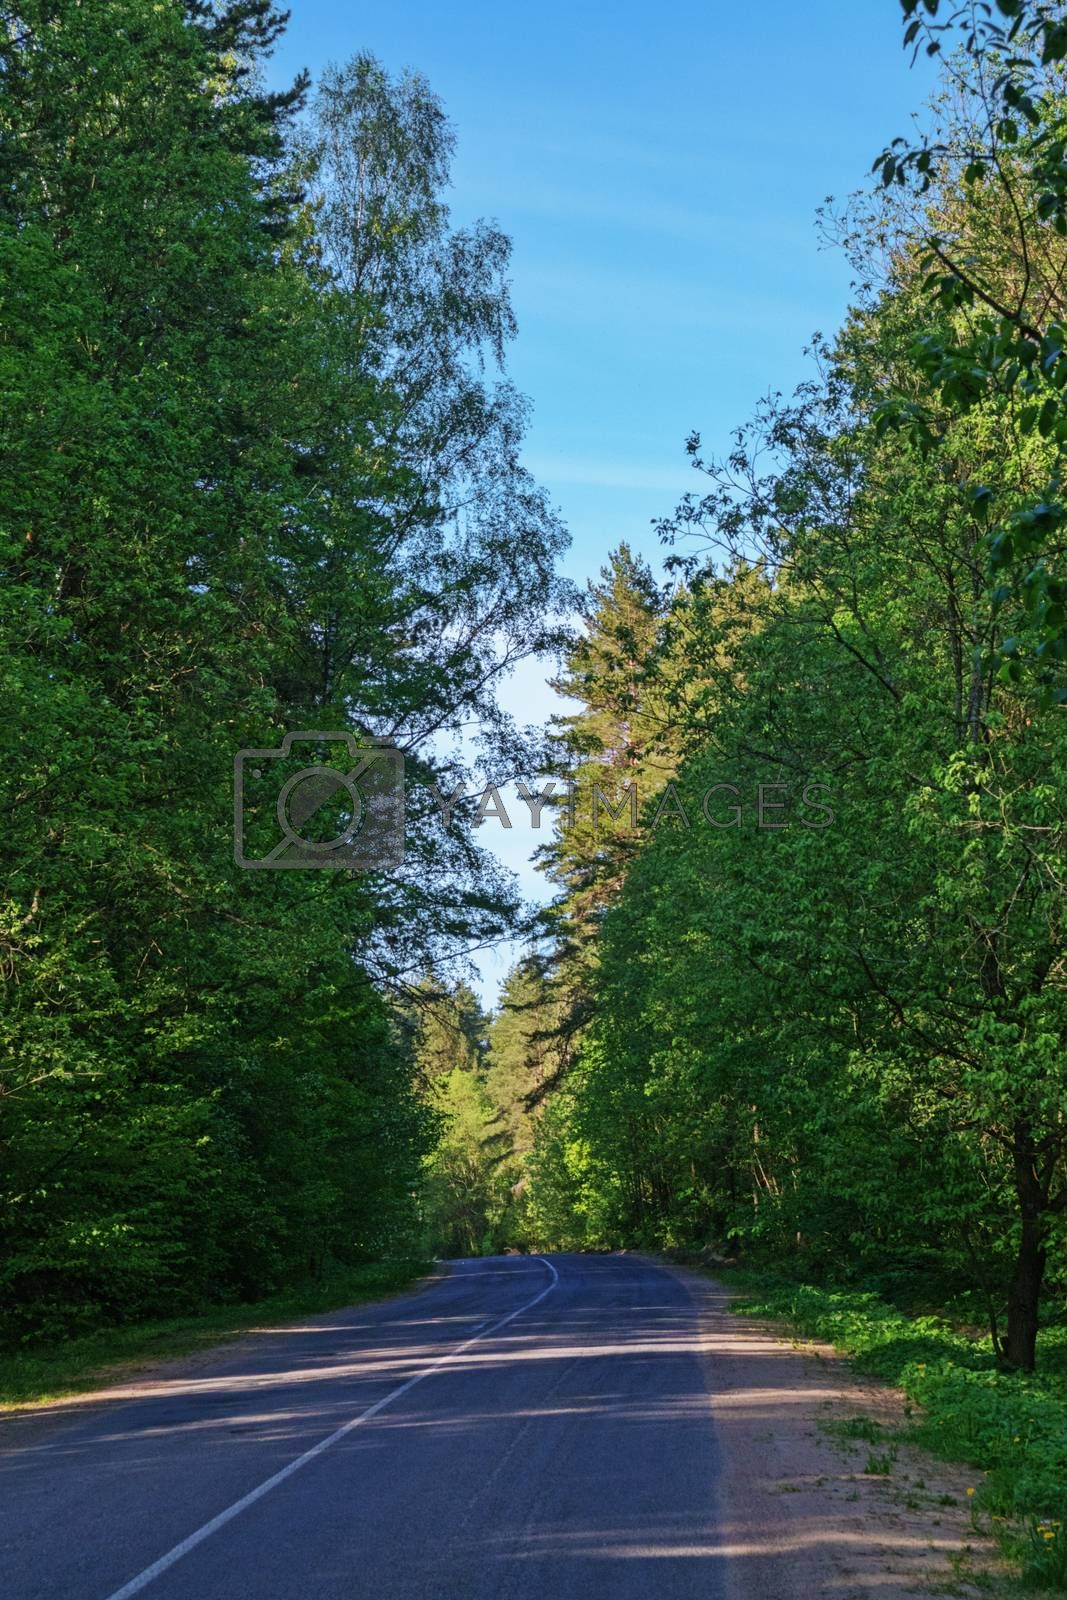 Asphalt road in the shade of the trees.